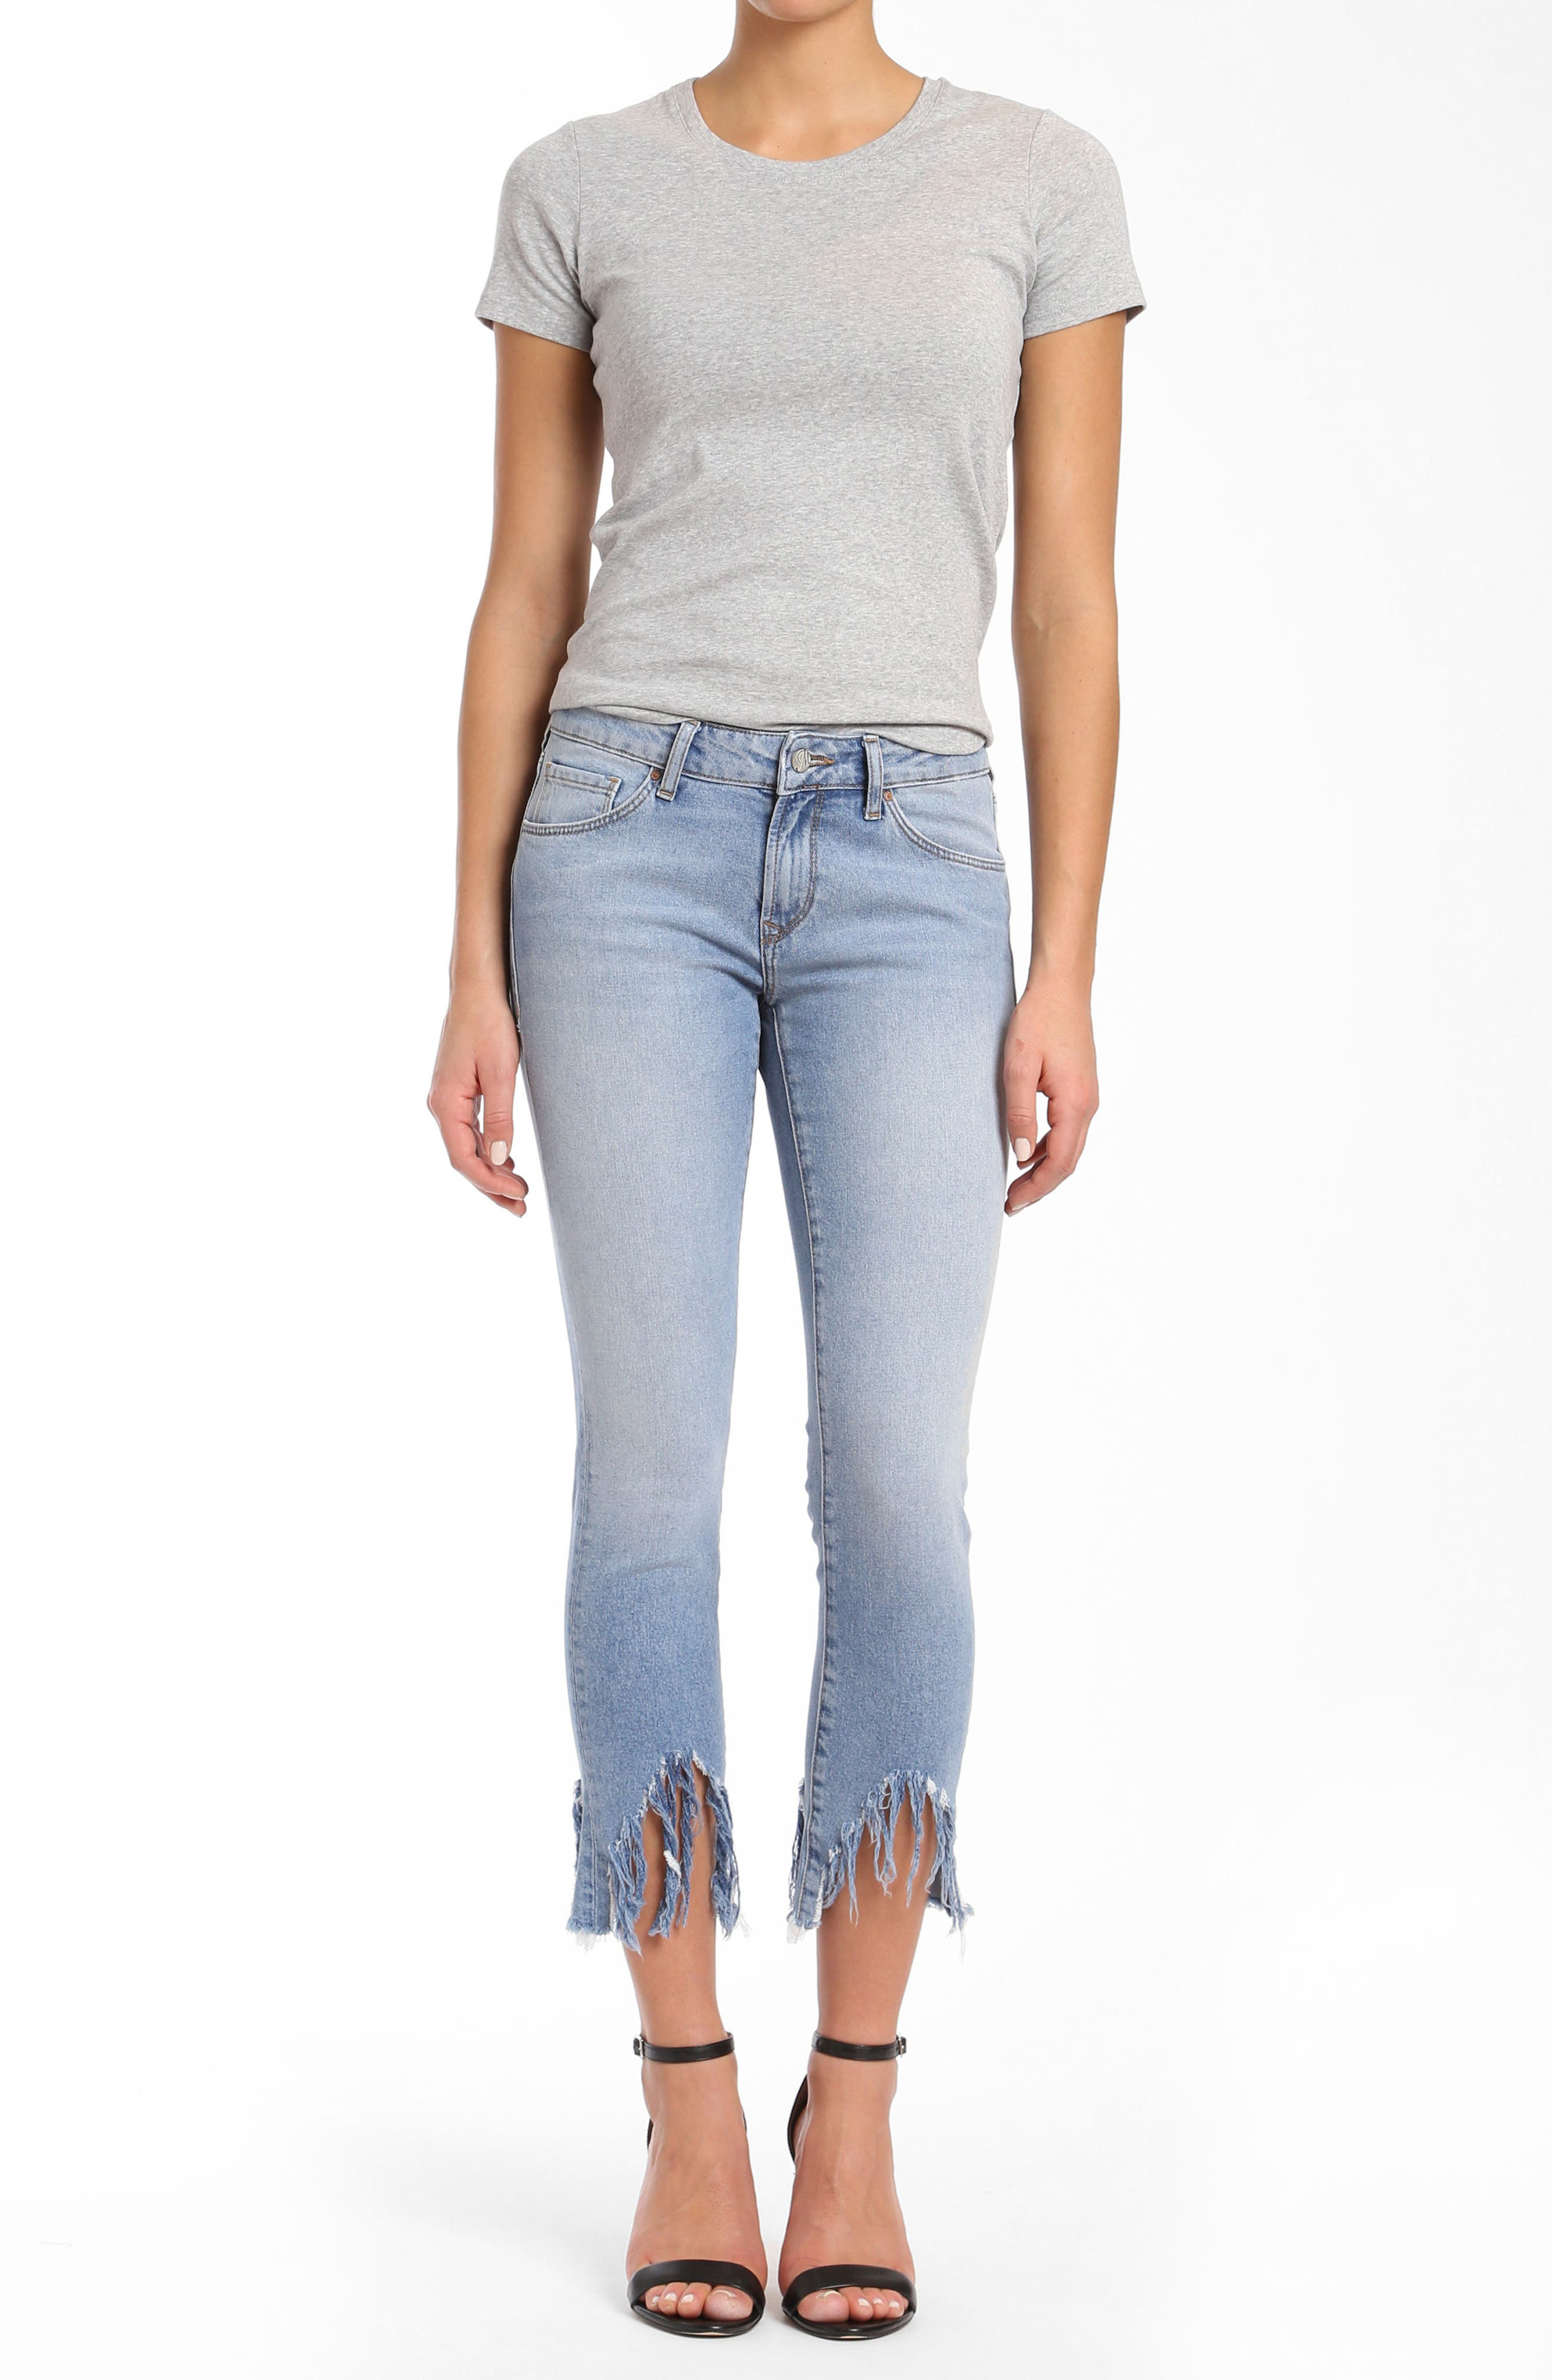 Adriana Sharkbite Fringe Super Skinny Jeans,                             Alternate thumbnail 5, color,                             LIGHT FRINGE 90S